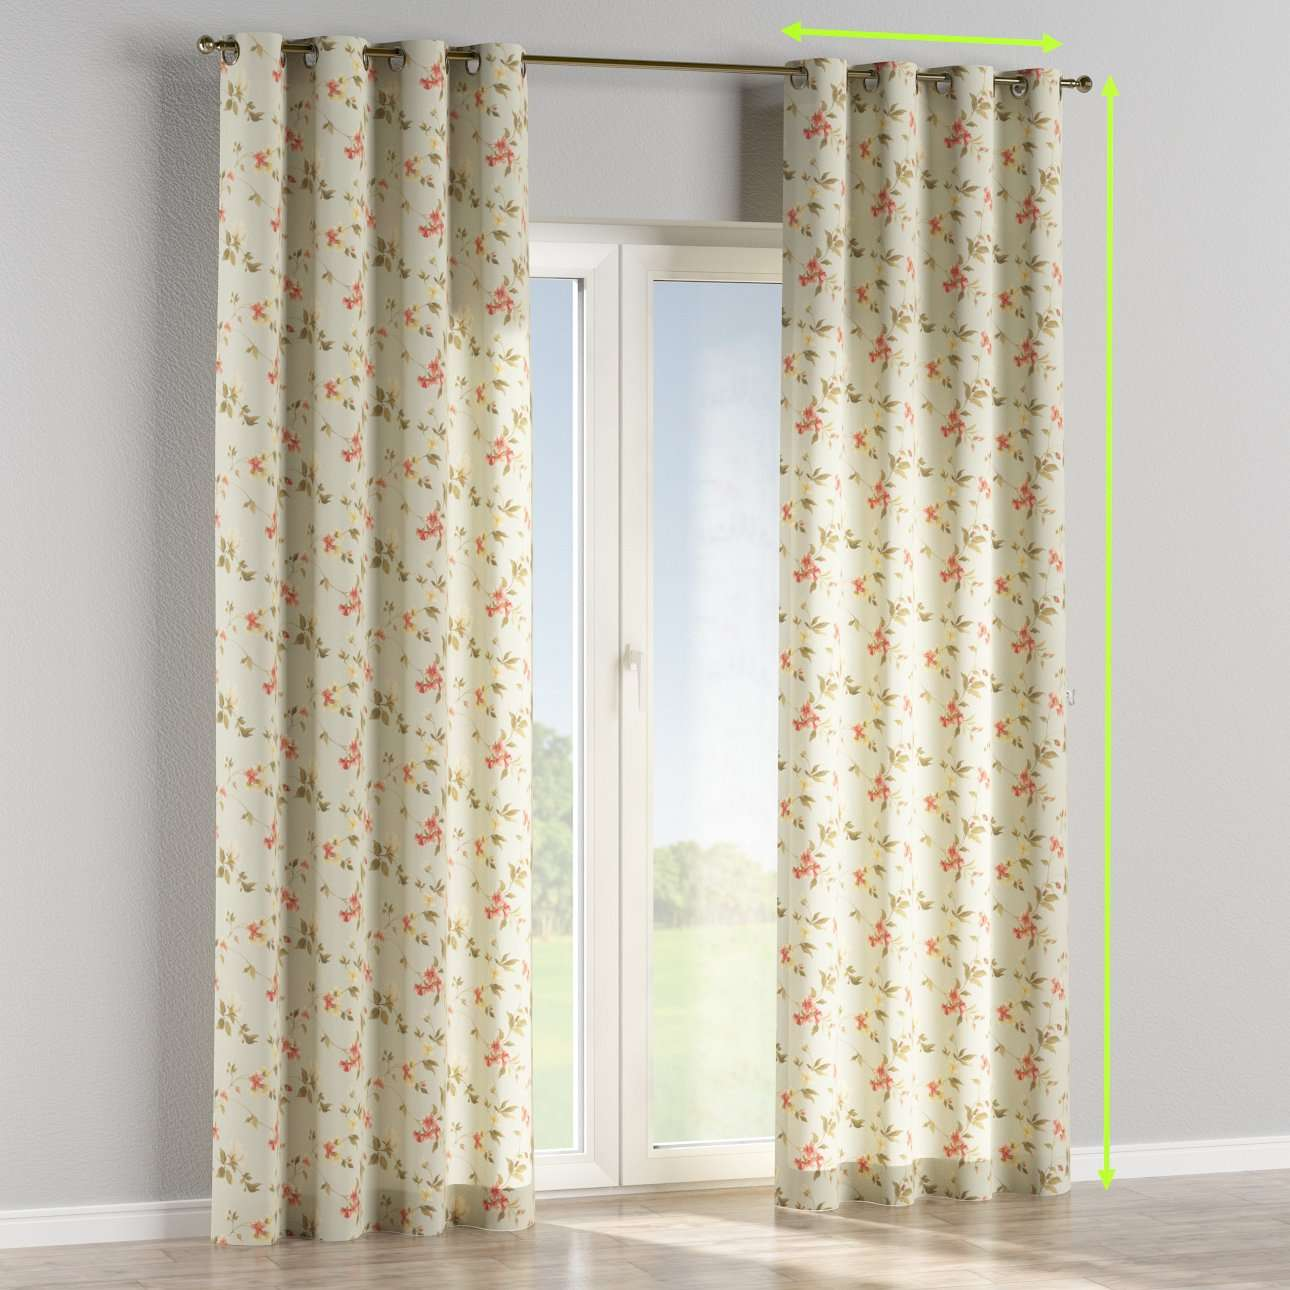 Eyelet lined curtains in collection Londres, fabric: 124-65